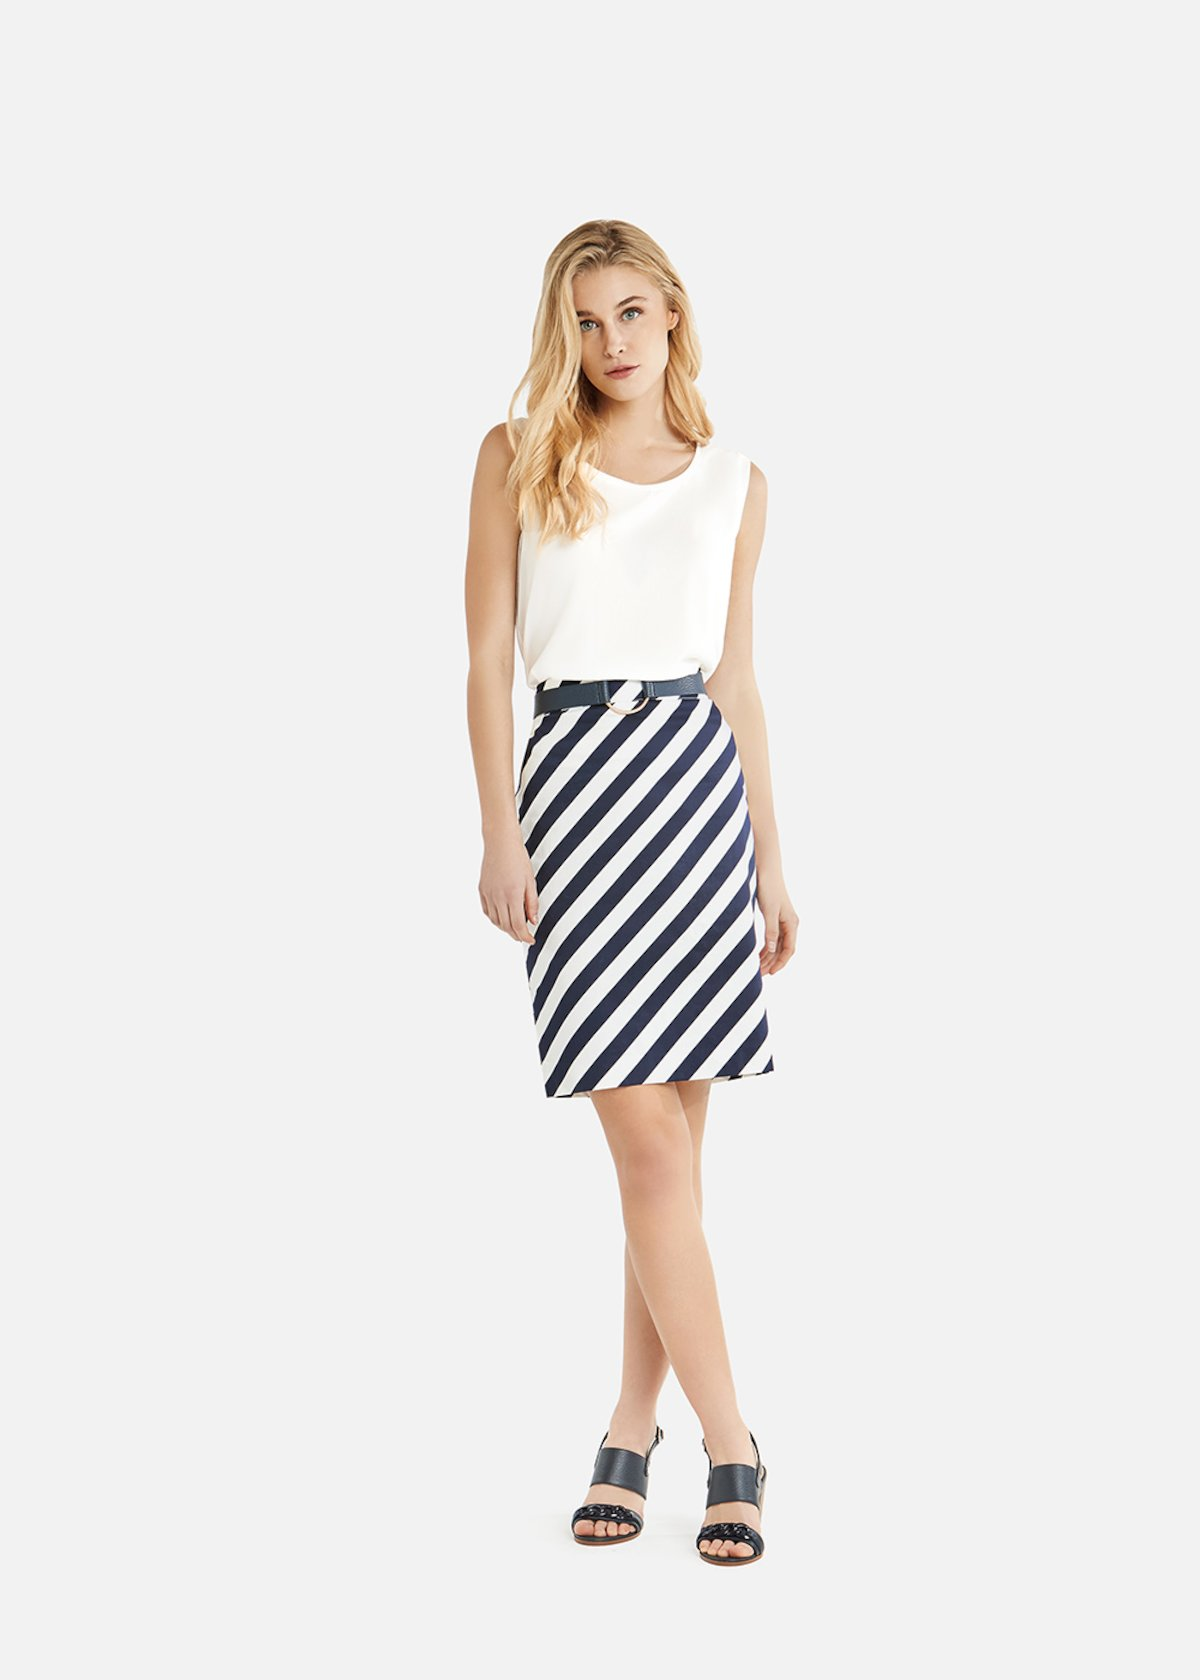 Judy stripes fantasy skirt with slit on the back - Medium Blue / White Stripes